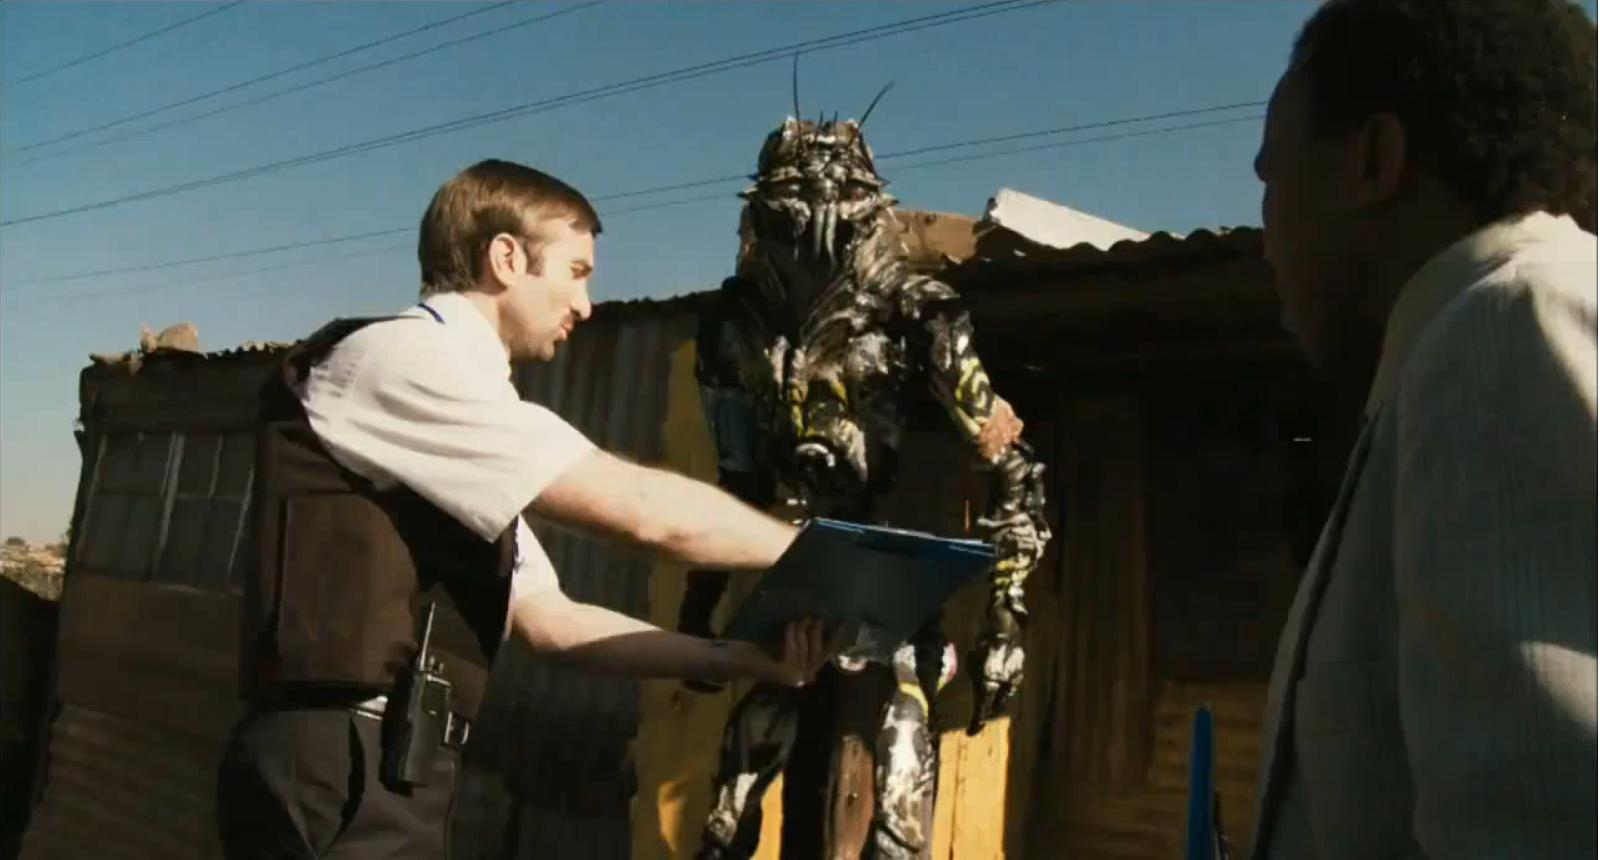 Wikus (Sharlto Copley) explains to one of the aliens that it's time to go.